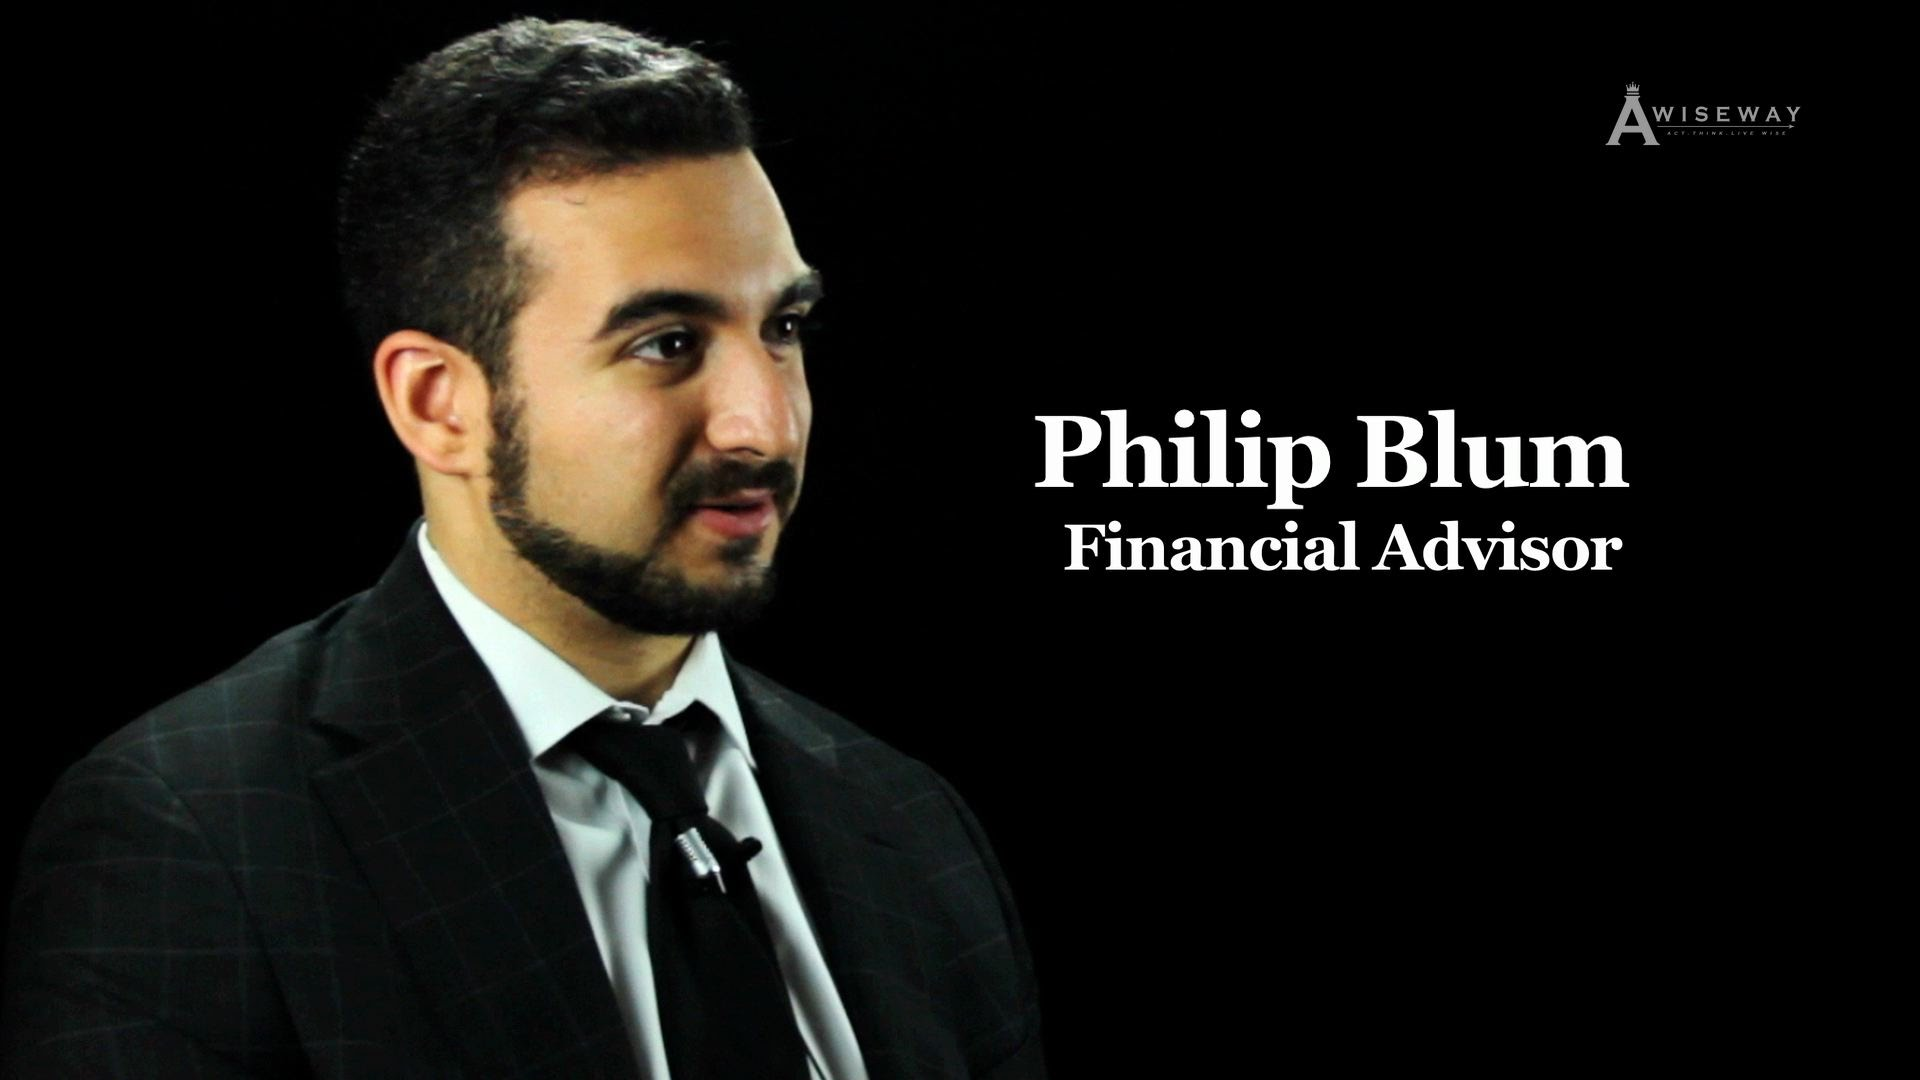 The Qualifications to Become a Financial Advisor